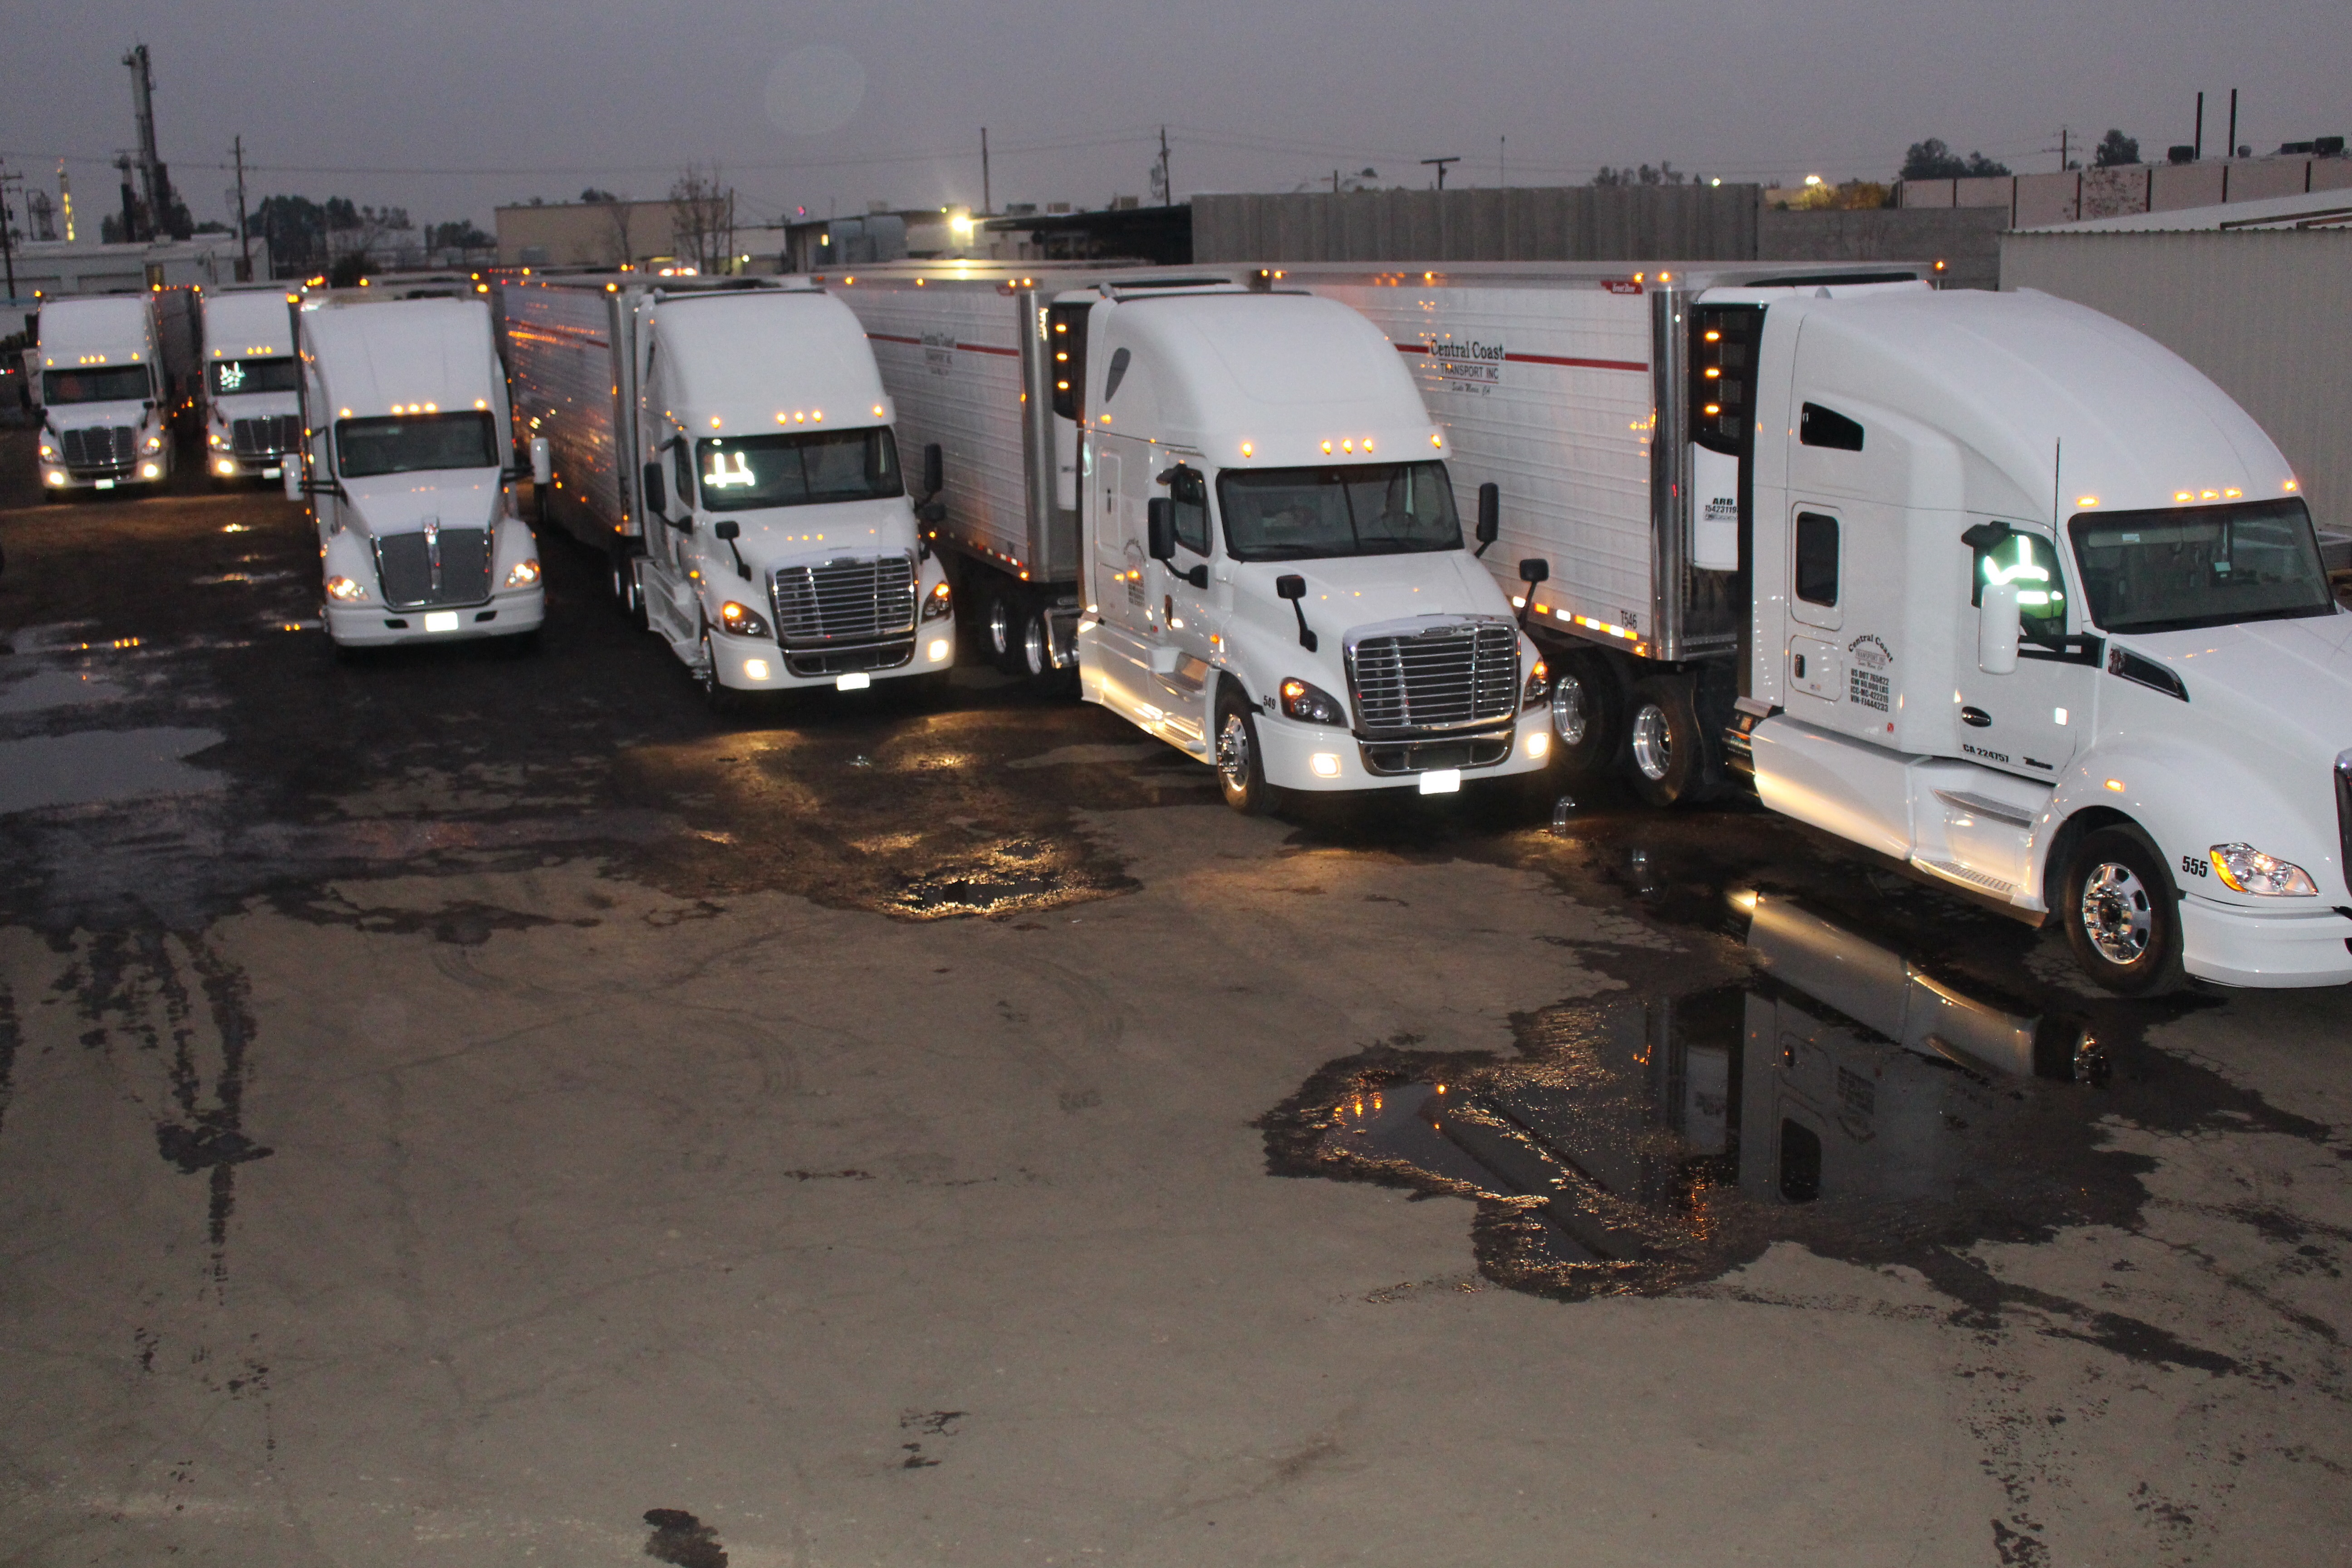 central transport inc At american central transport, we keep america's freight rolling across the highways every day of the year from the midwest to the south-southeast, our freight arrives safe and on time.